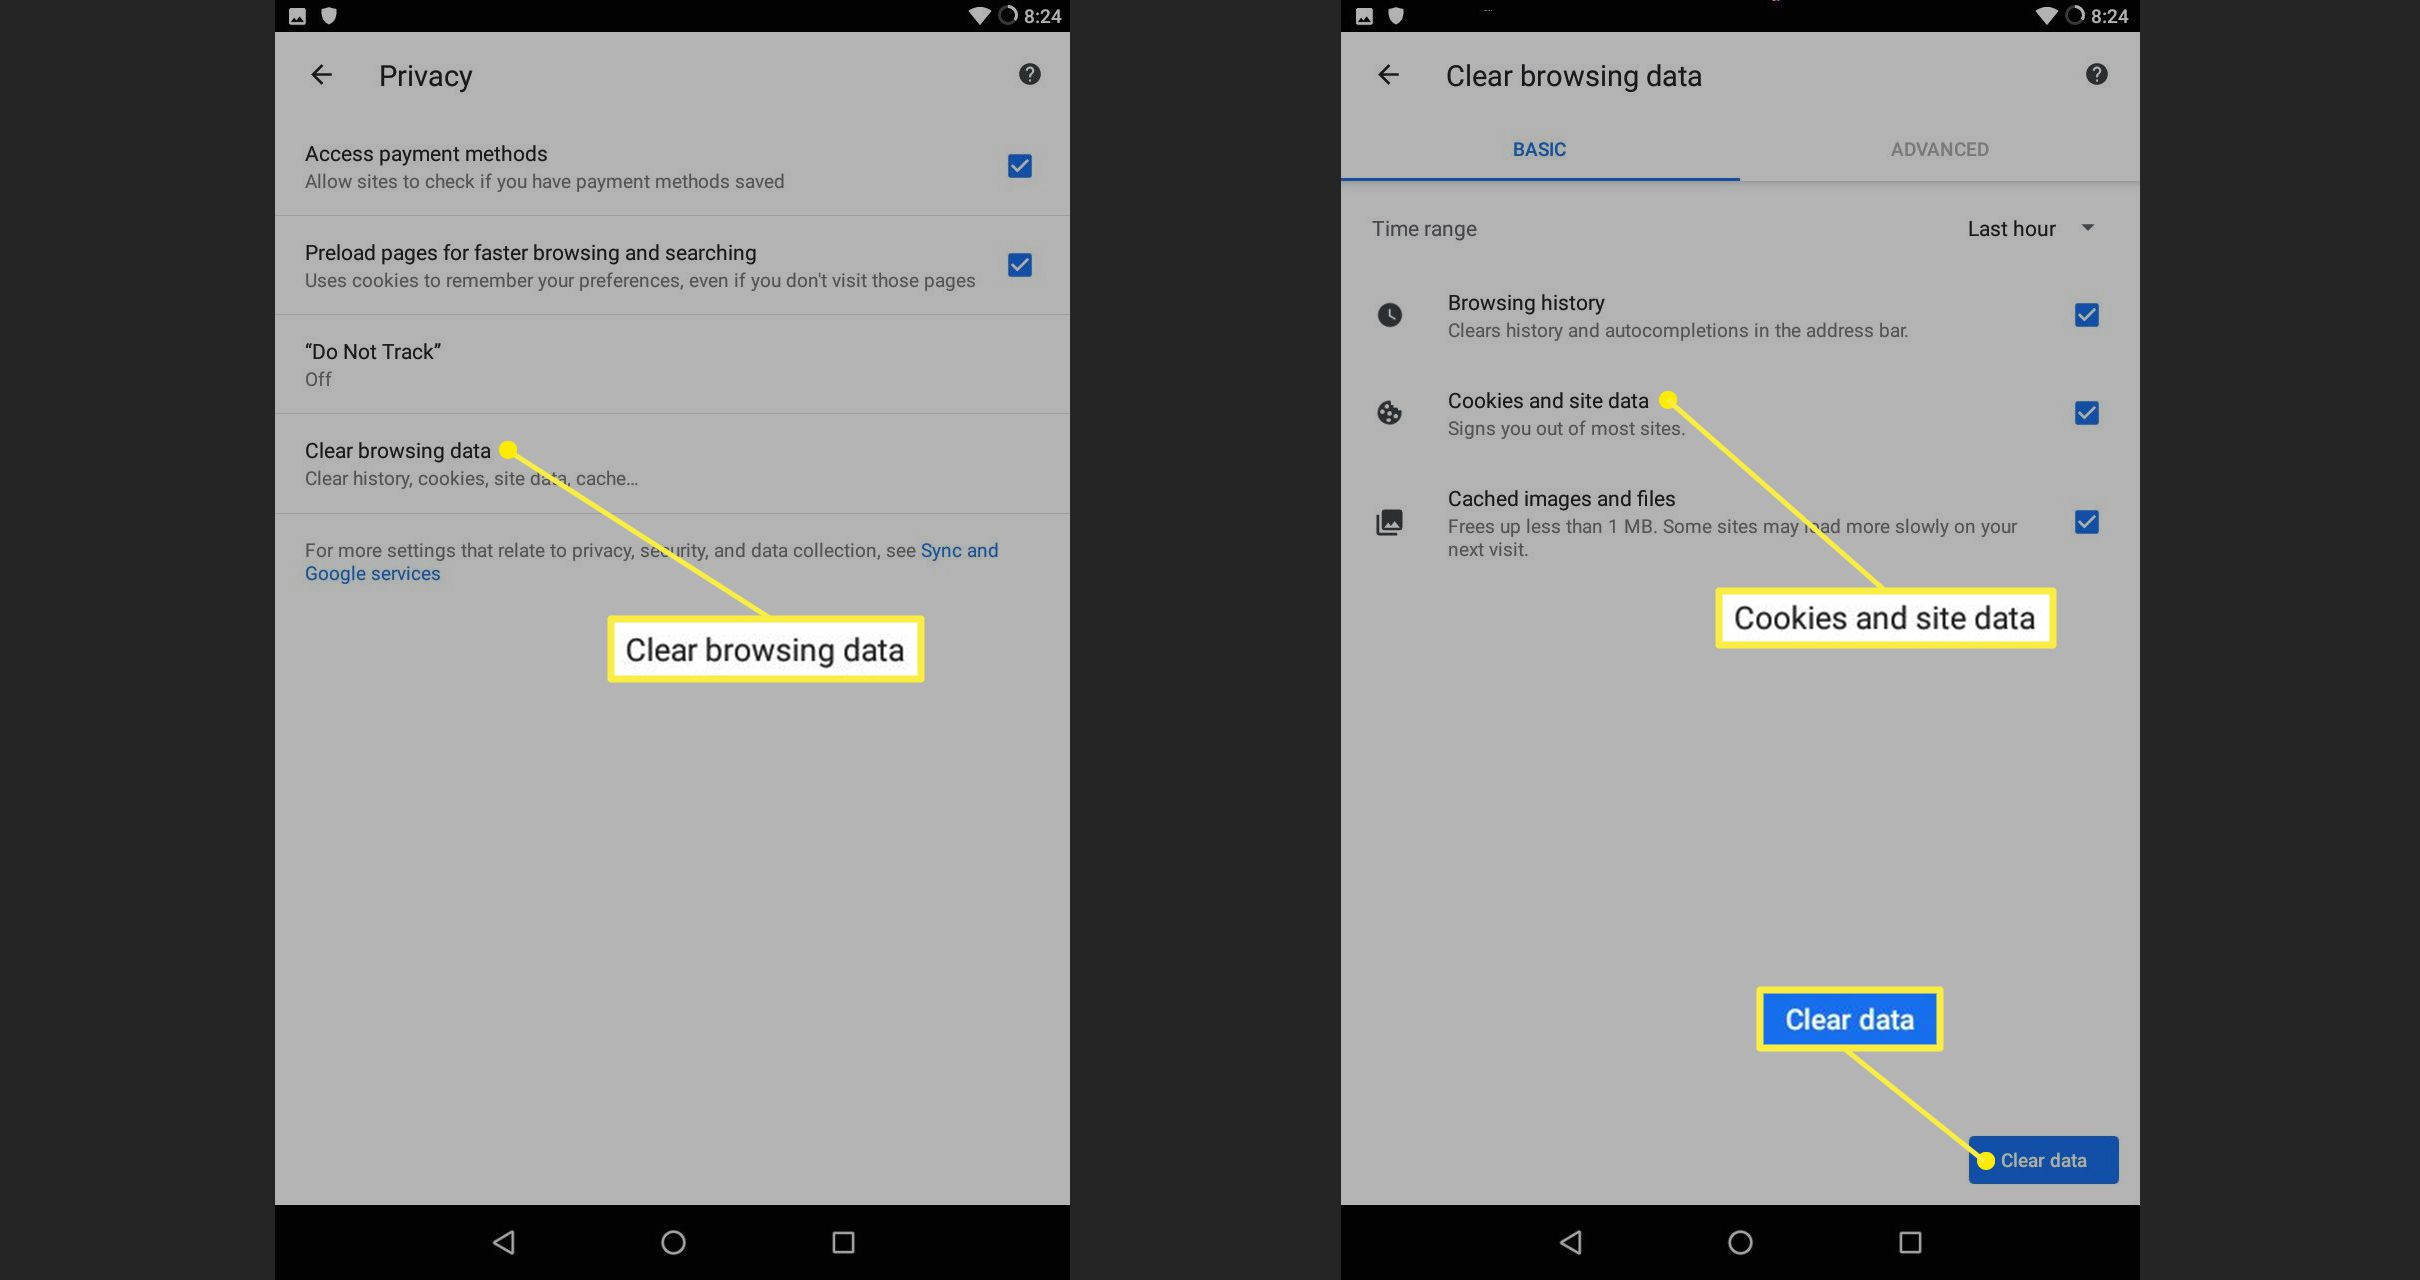 Android Chrome Clear browsing data with Cookies and site data highlighted